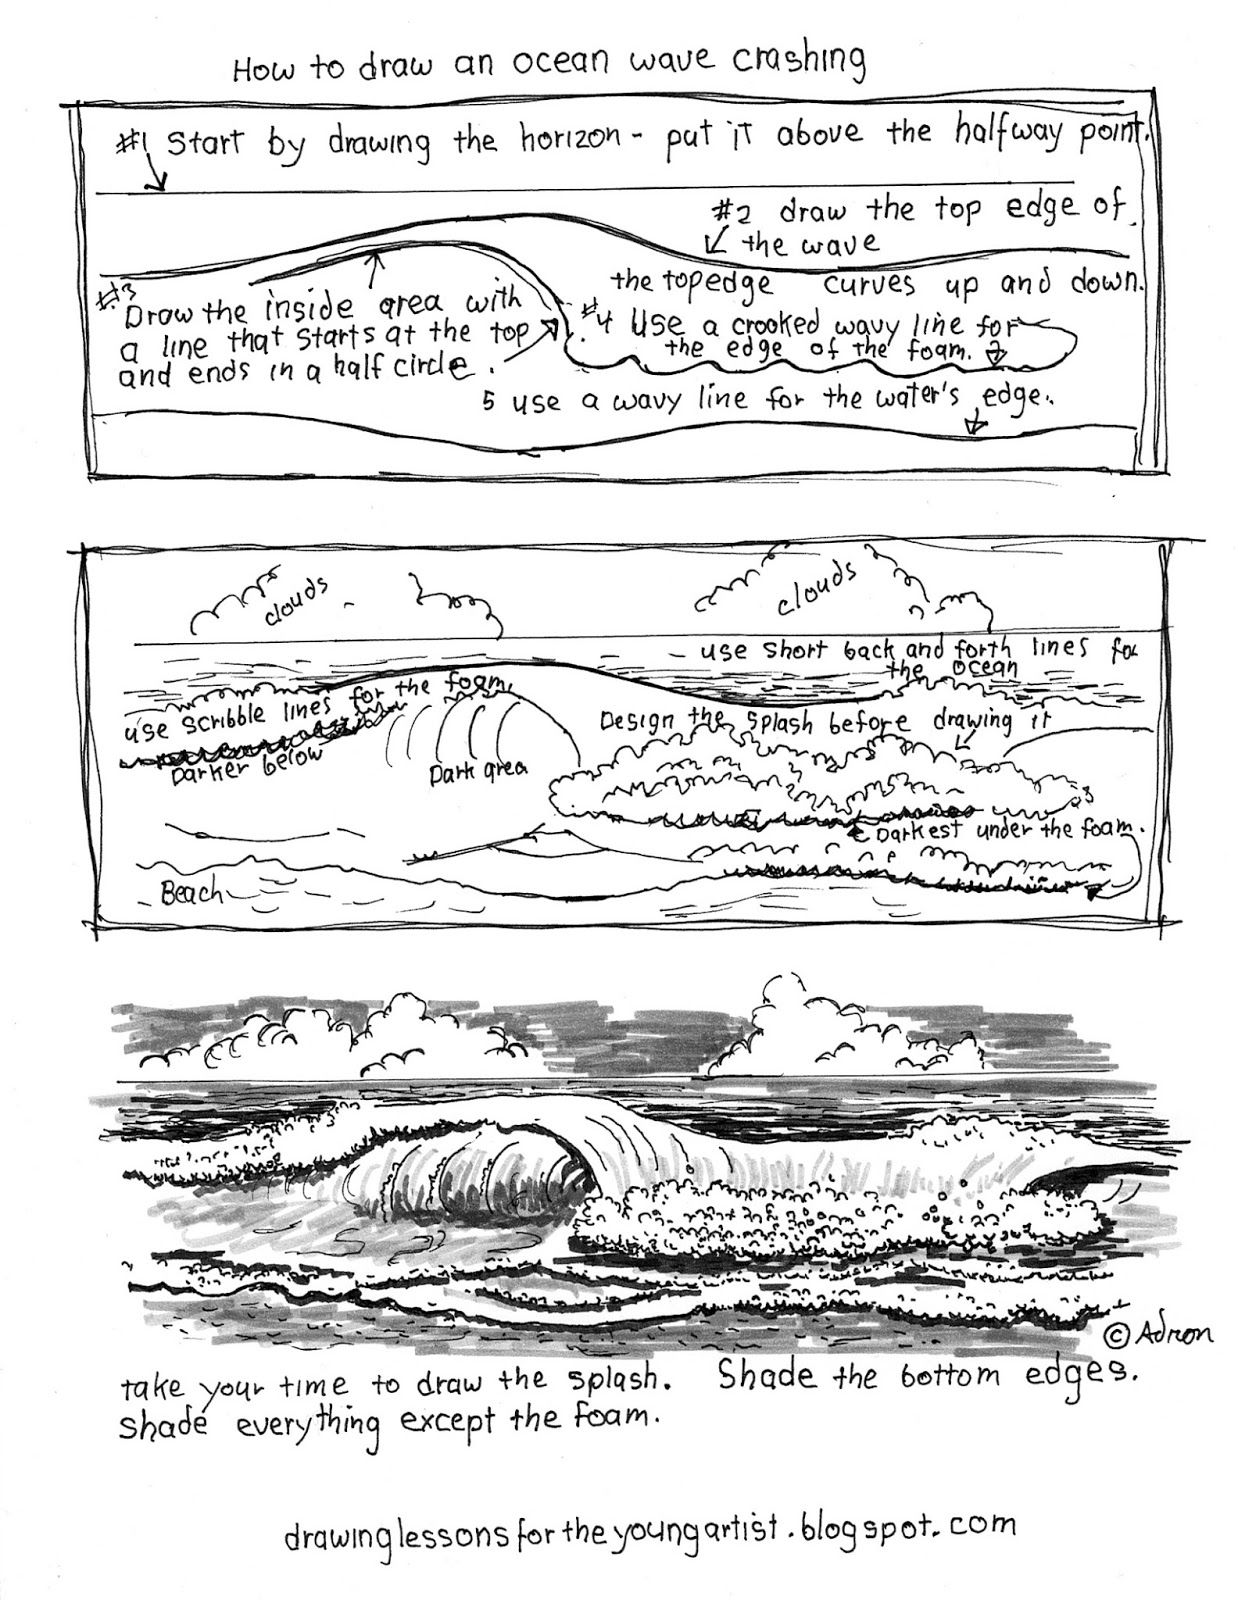 How To Draw Worksheets For The Young Artist Printable How To Draw Ocean Waves Worksheet